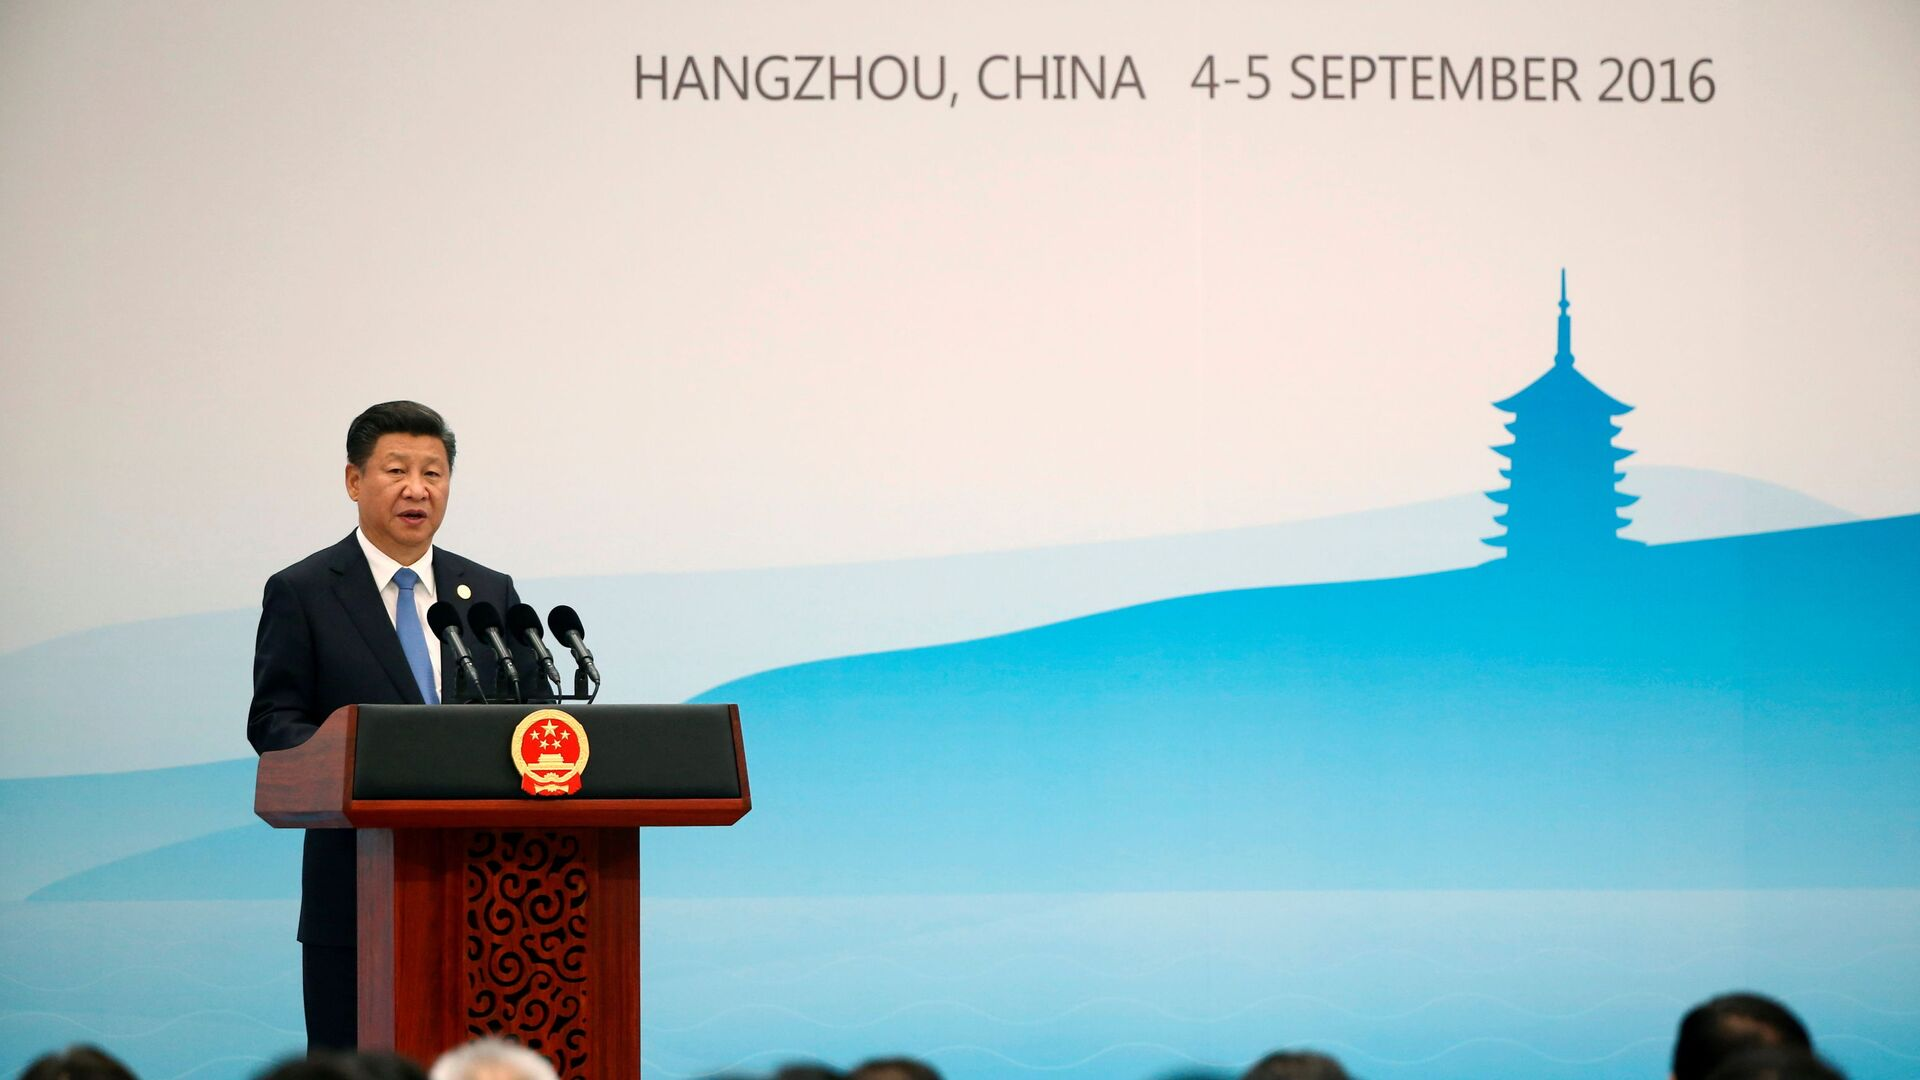 China's President Xi Jinping speaks at a news conference after the closing of G20 Summit in Hangzhou, Zhejiang Province, China, September 5, 2016. REUTERS/Damir Sagolj/File Photo - Sputnik International, 1920, 02.09.2021